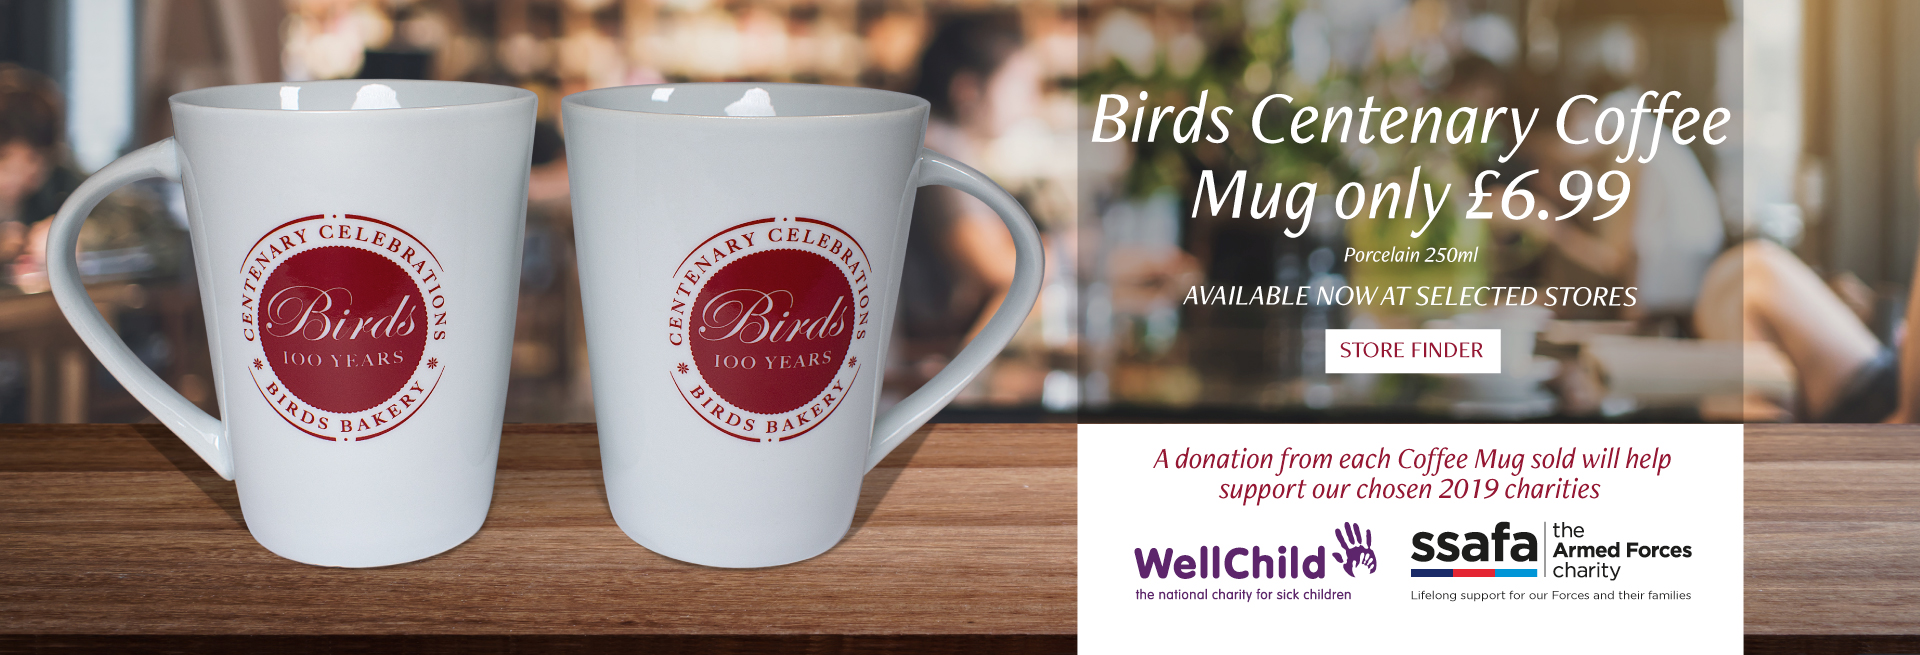 Birds Centenary Coffee Mug only £6.99 (Porcelain, 250ml), Available Now at selected stores. A donation from each Coffee Mug sold will help support our chosen 2019 charities, WellChild and ssafa